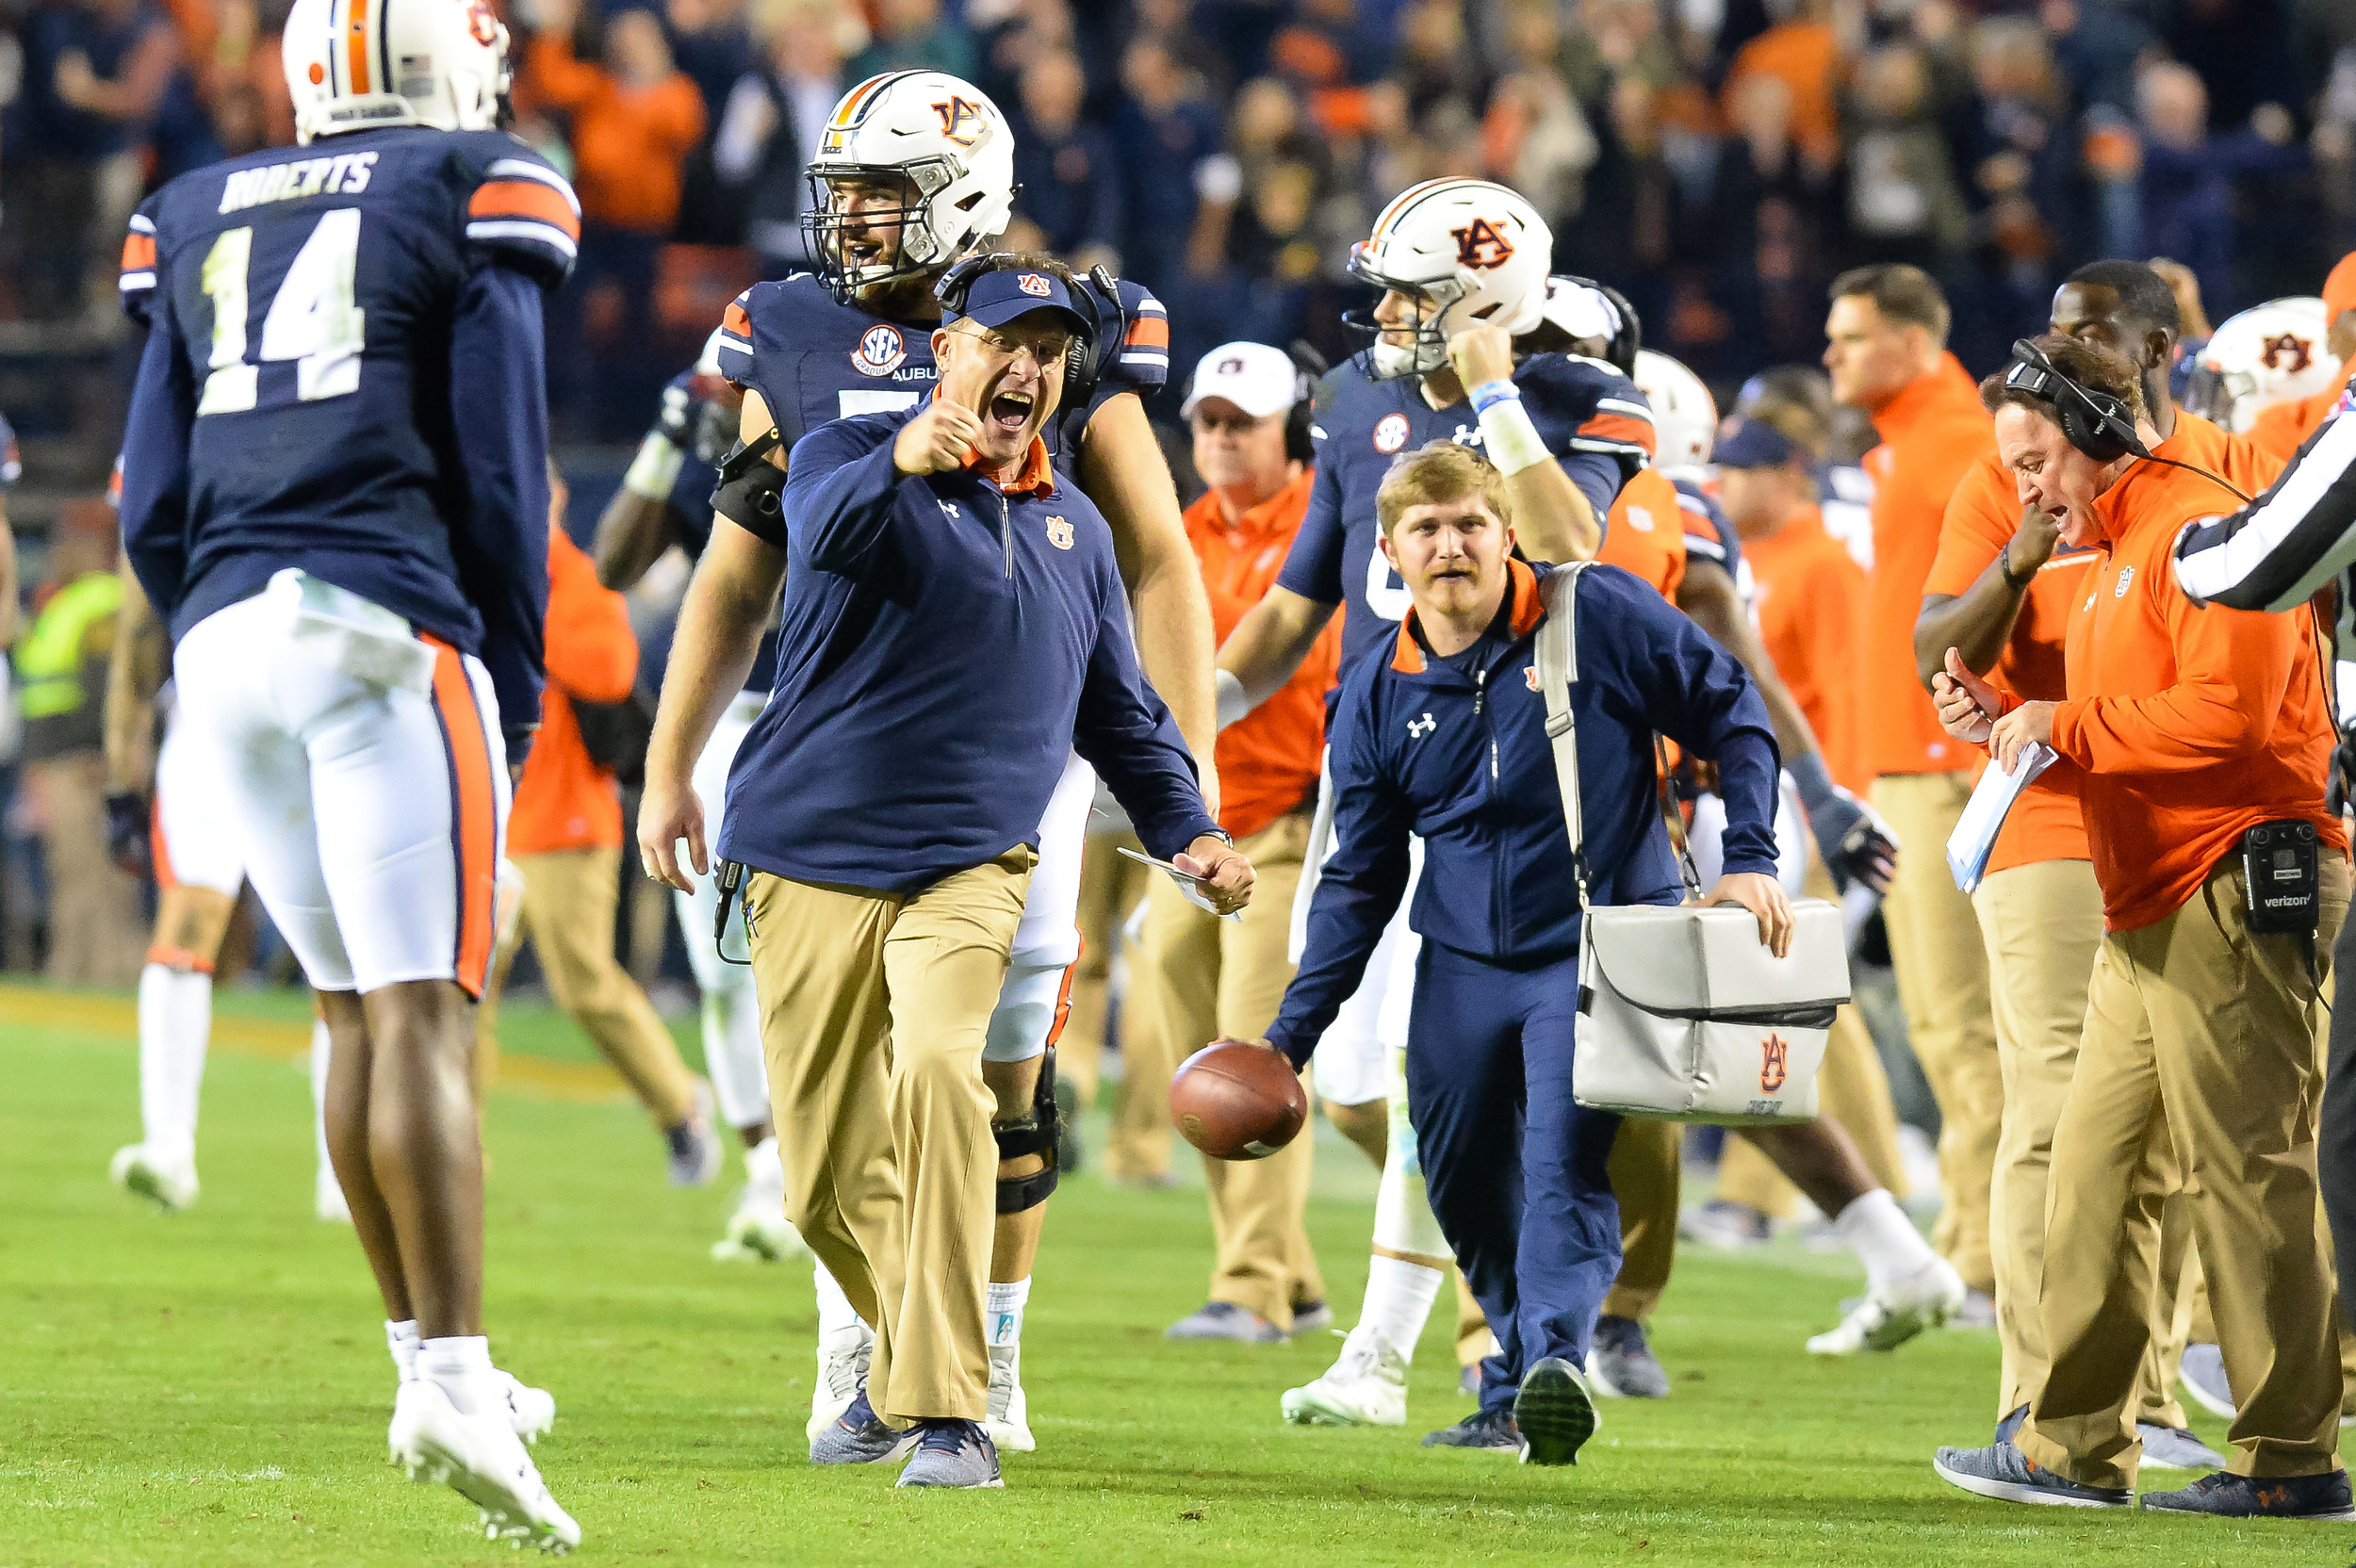 Auburn Tigers head coach Guz Malzahn reacts to a fourth down stop during the second half of Saturday's game, at Jordan-Hare Stadium.